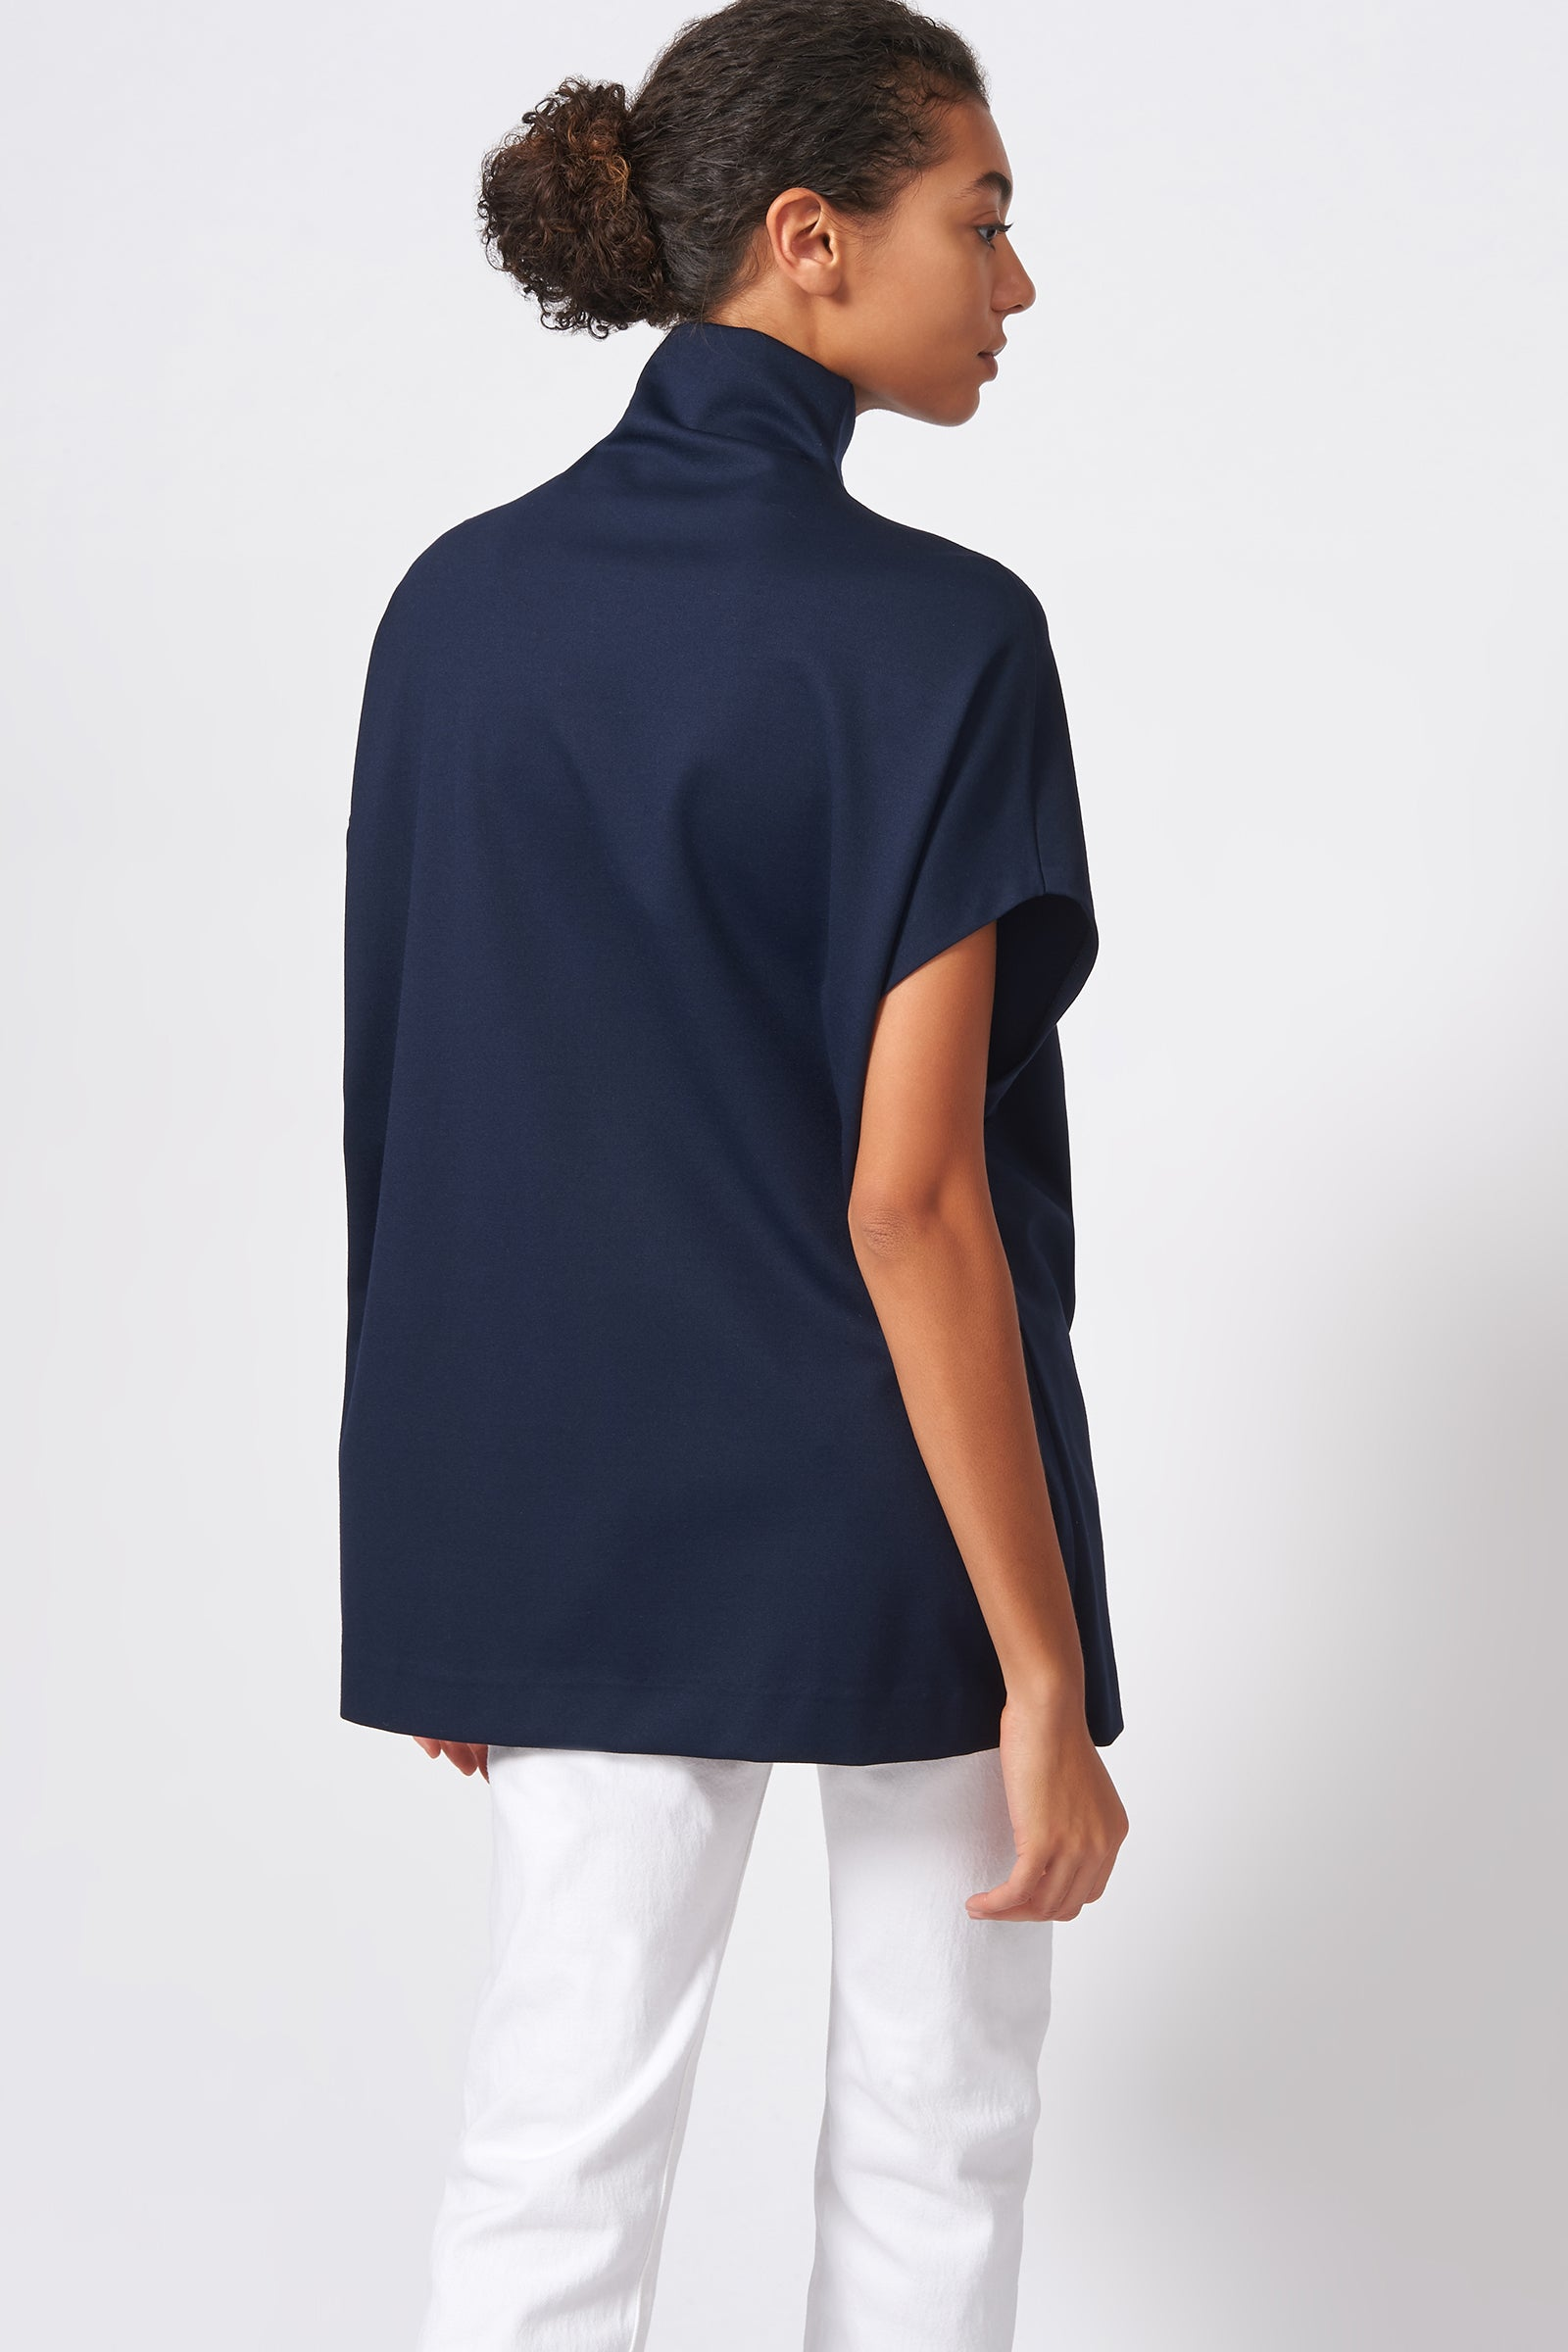 Kal Rieman Ponte Funnelneck in Navy on Model Back View